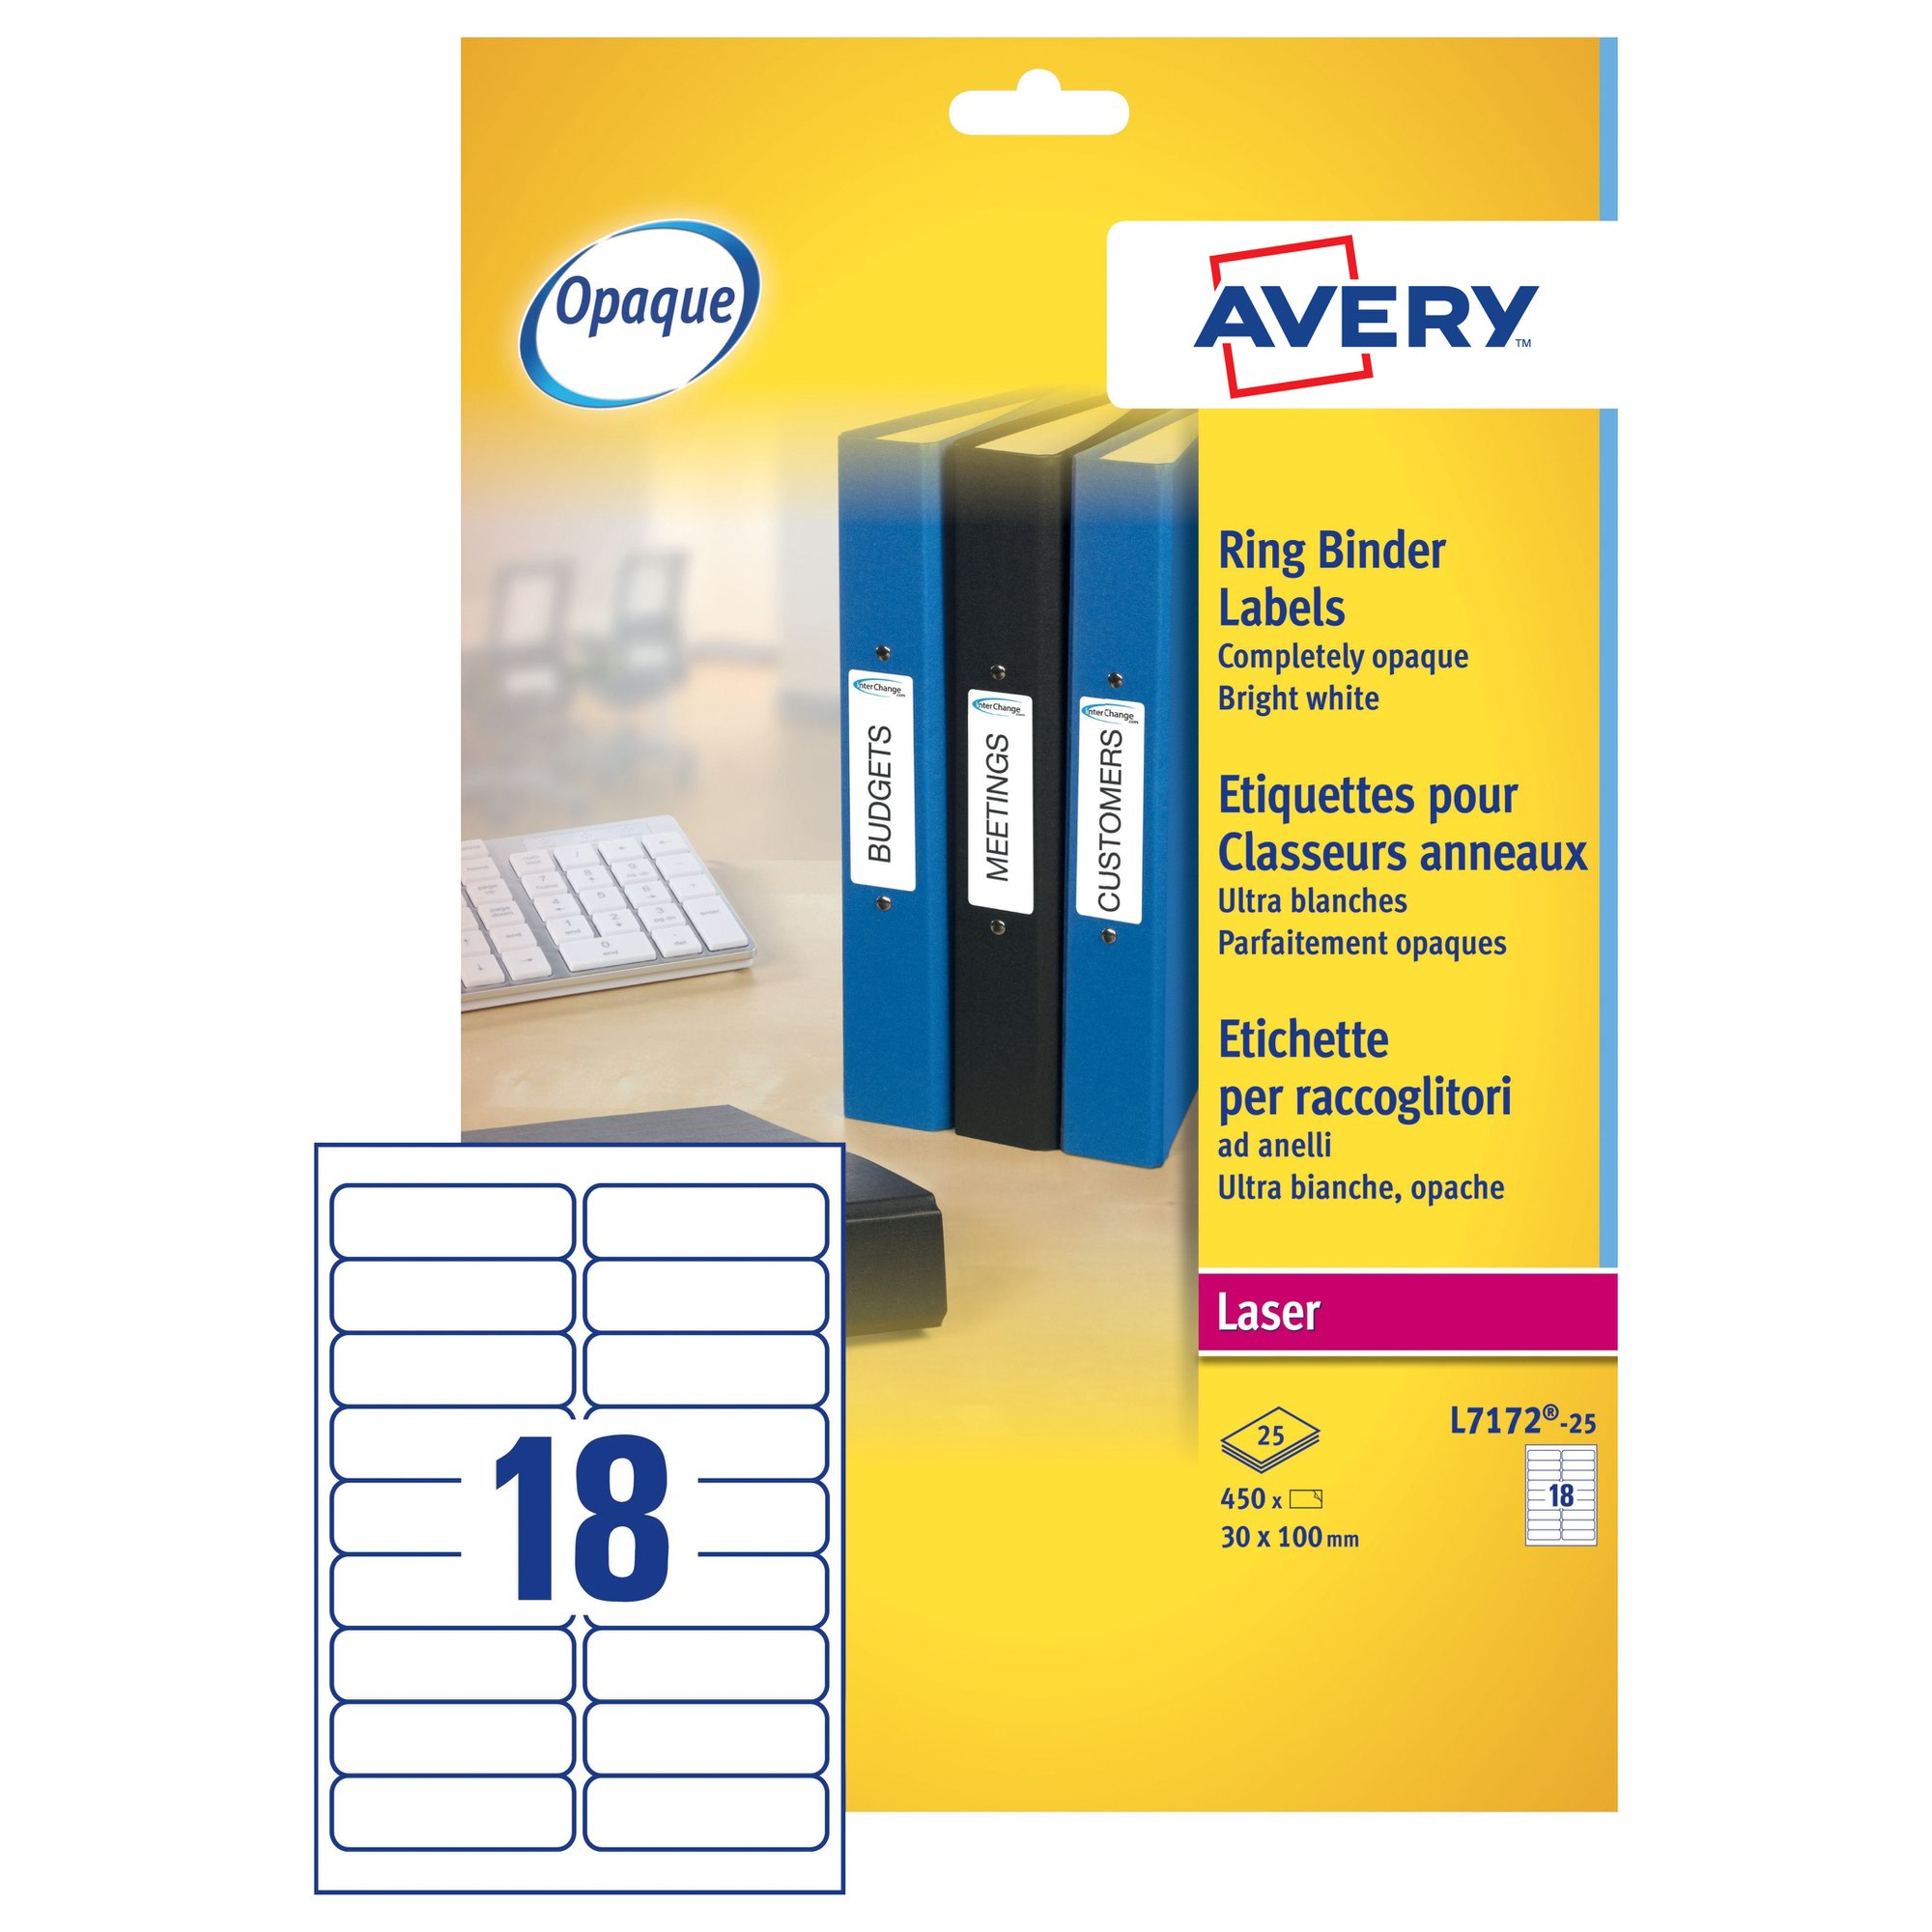 Avery Laser Ring Binder Labels 100x30mm White (25) L7172-25